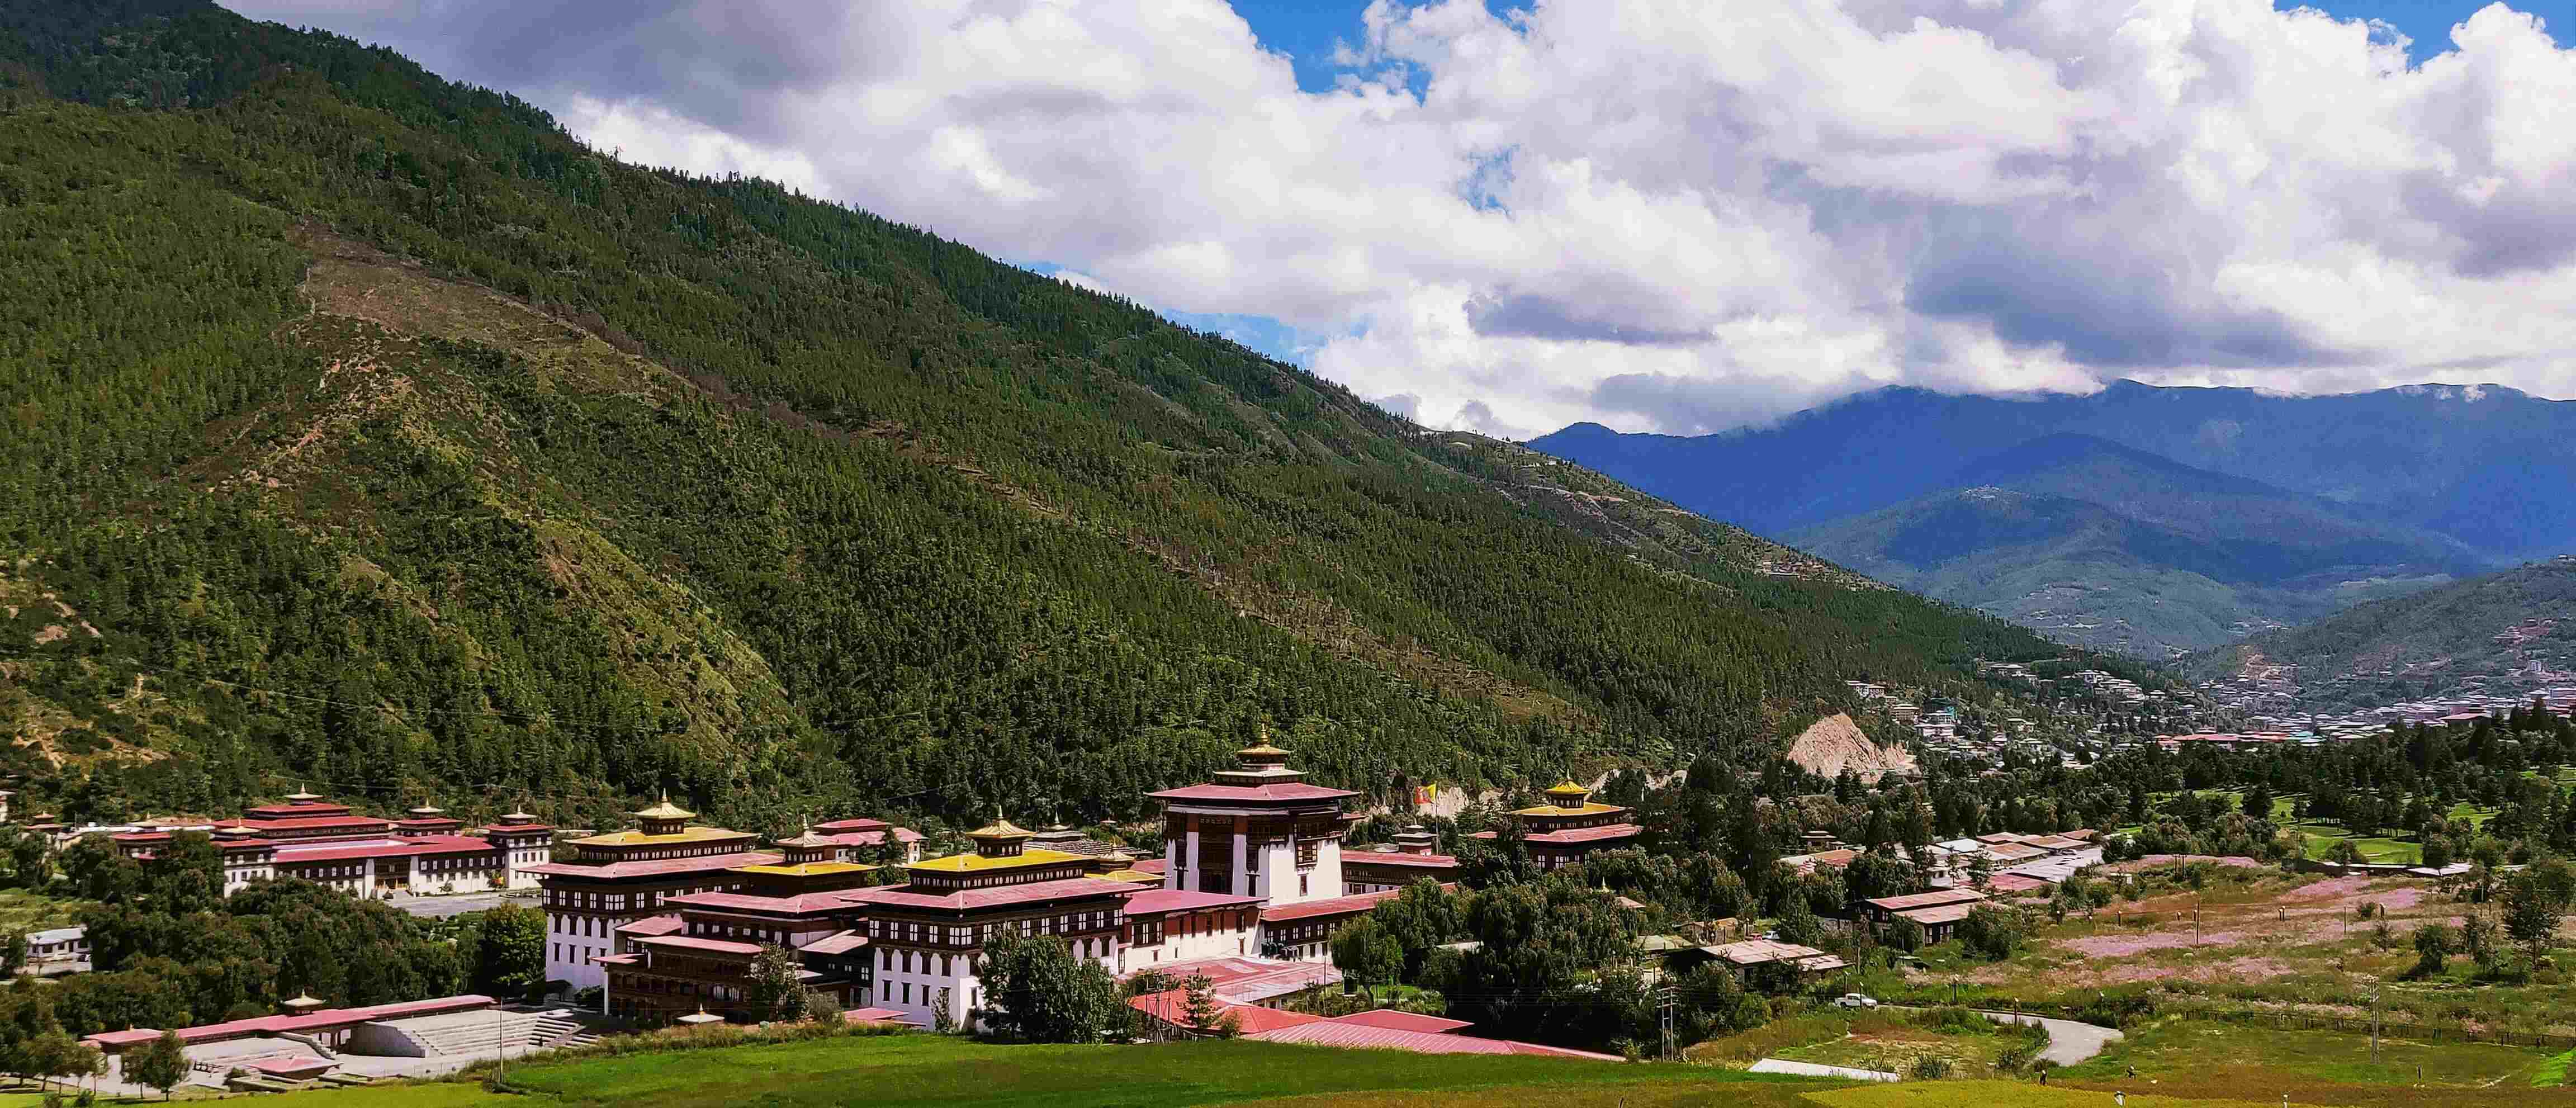 VISITING BHUTAN: THE LAND OF THE THUNDER DRAGON